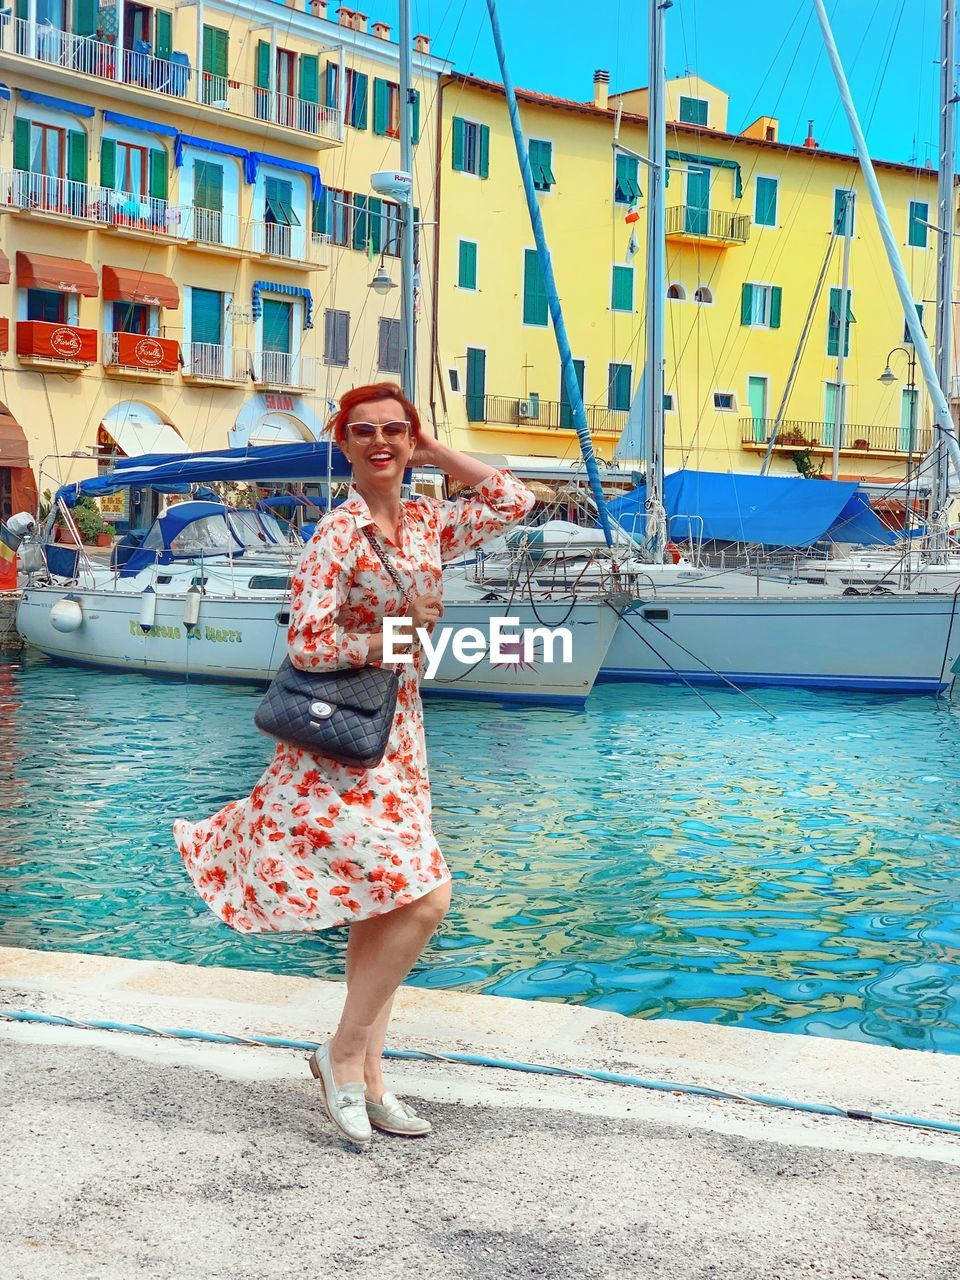 nautical vessel, transportation, water, one person, leisure activity, real people, mode of transportation, full length, portrait, lifestyles, young adult, looking at camera, women, sea, smiling, casual clothing, young women, fashion, harbor, outdoors, beautiful woman